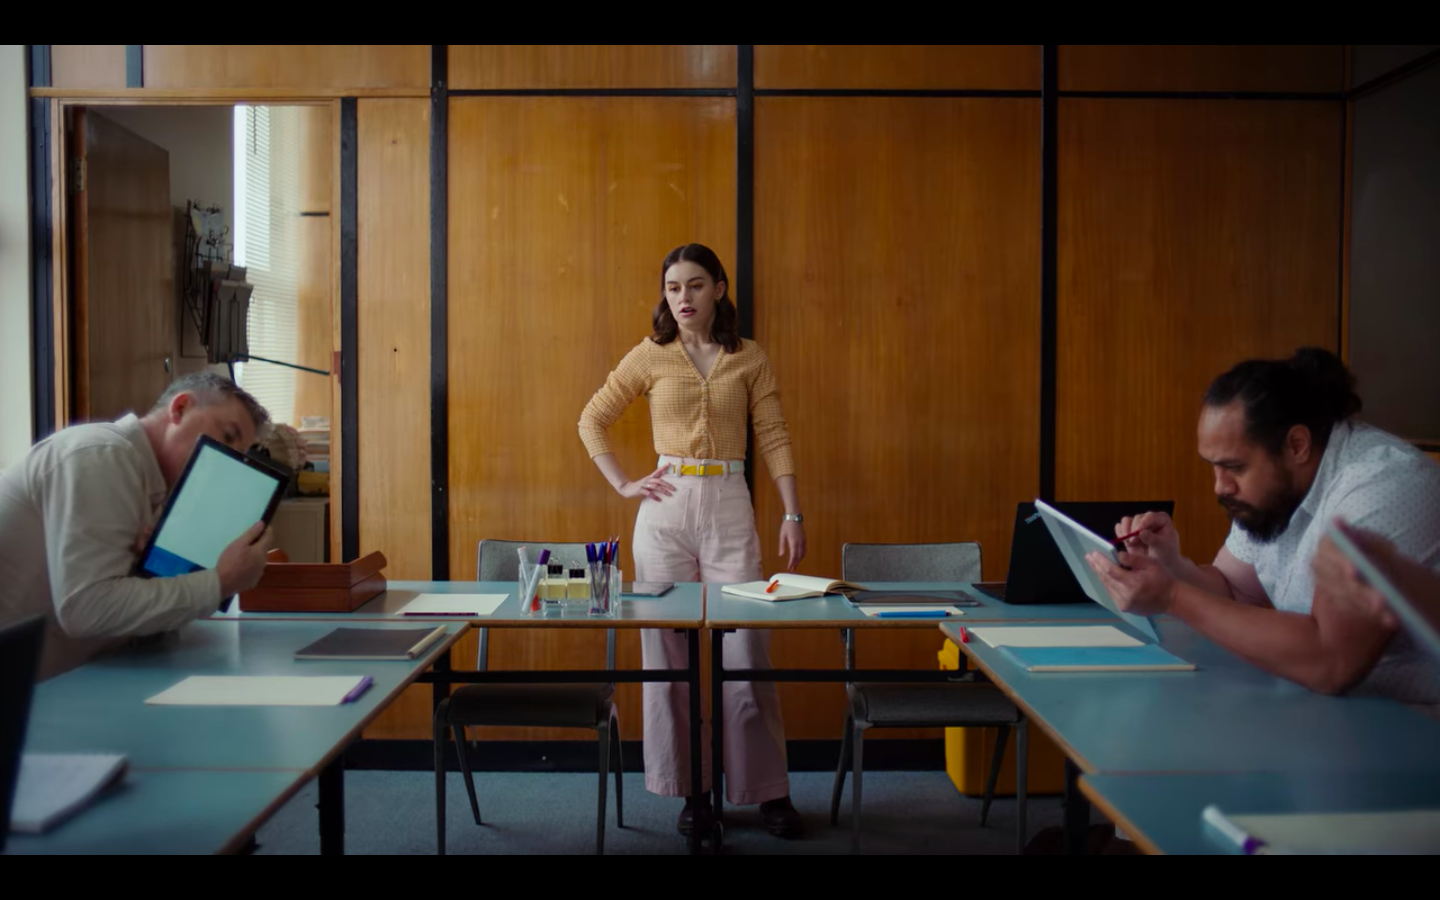 Penny standing in a conference room with a hand on her hip as a several men clumsily attempt to use tablets.